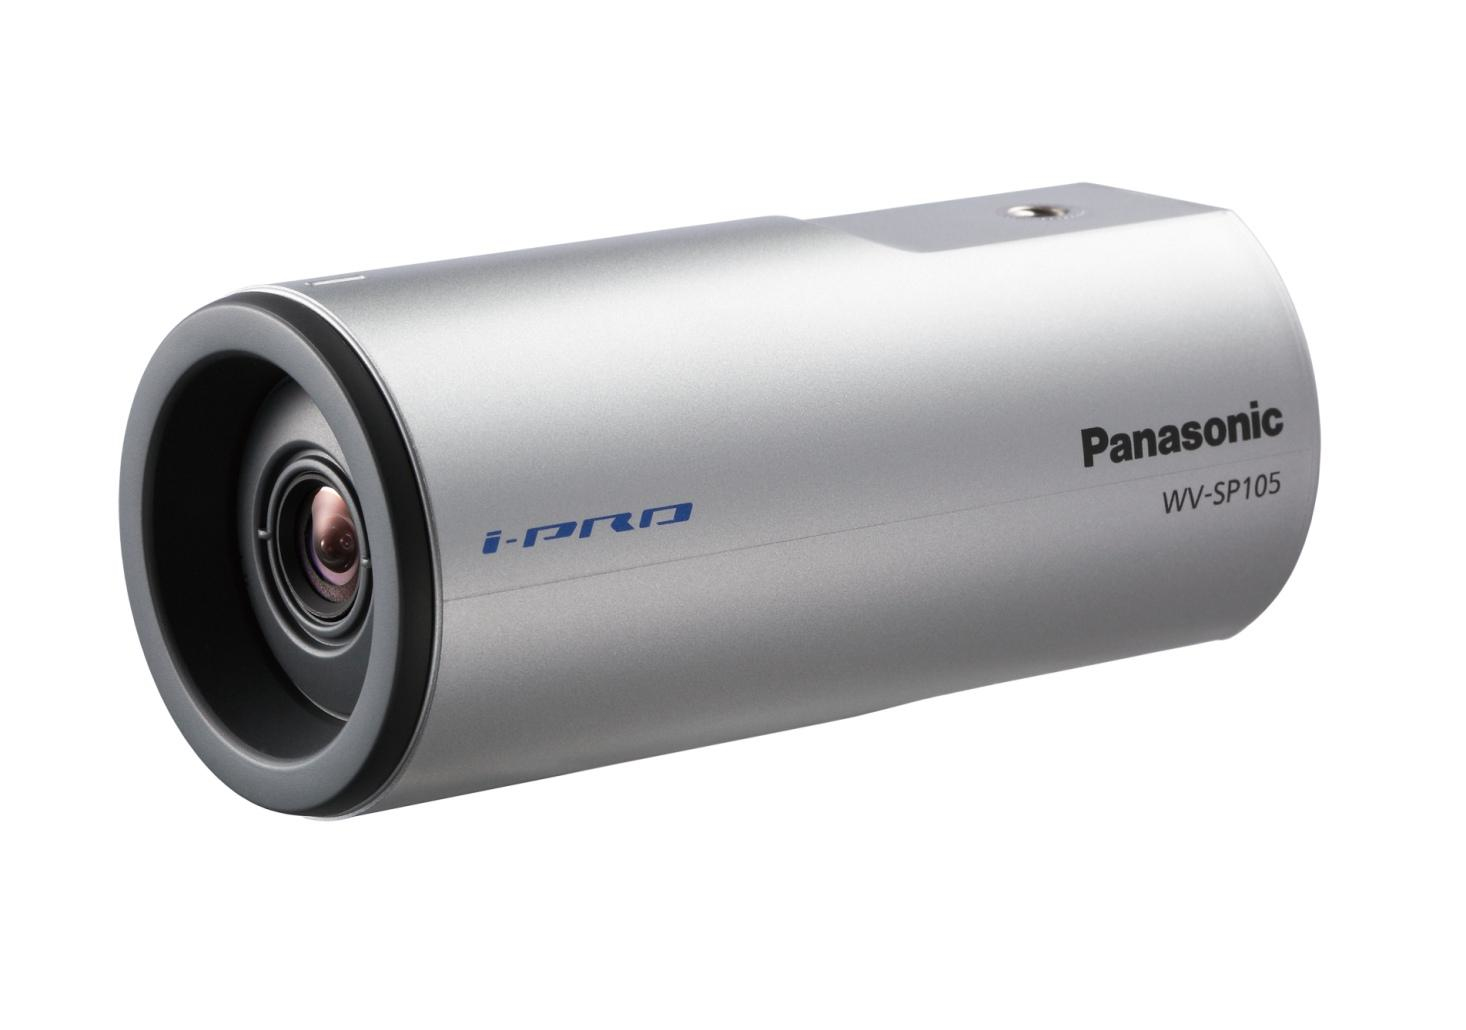 PANASONIC WV-SP105 INDOOR WHITE 1280 X 960PIXELS SECURITY CAMERA